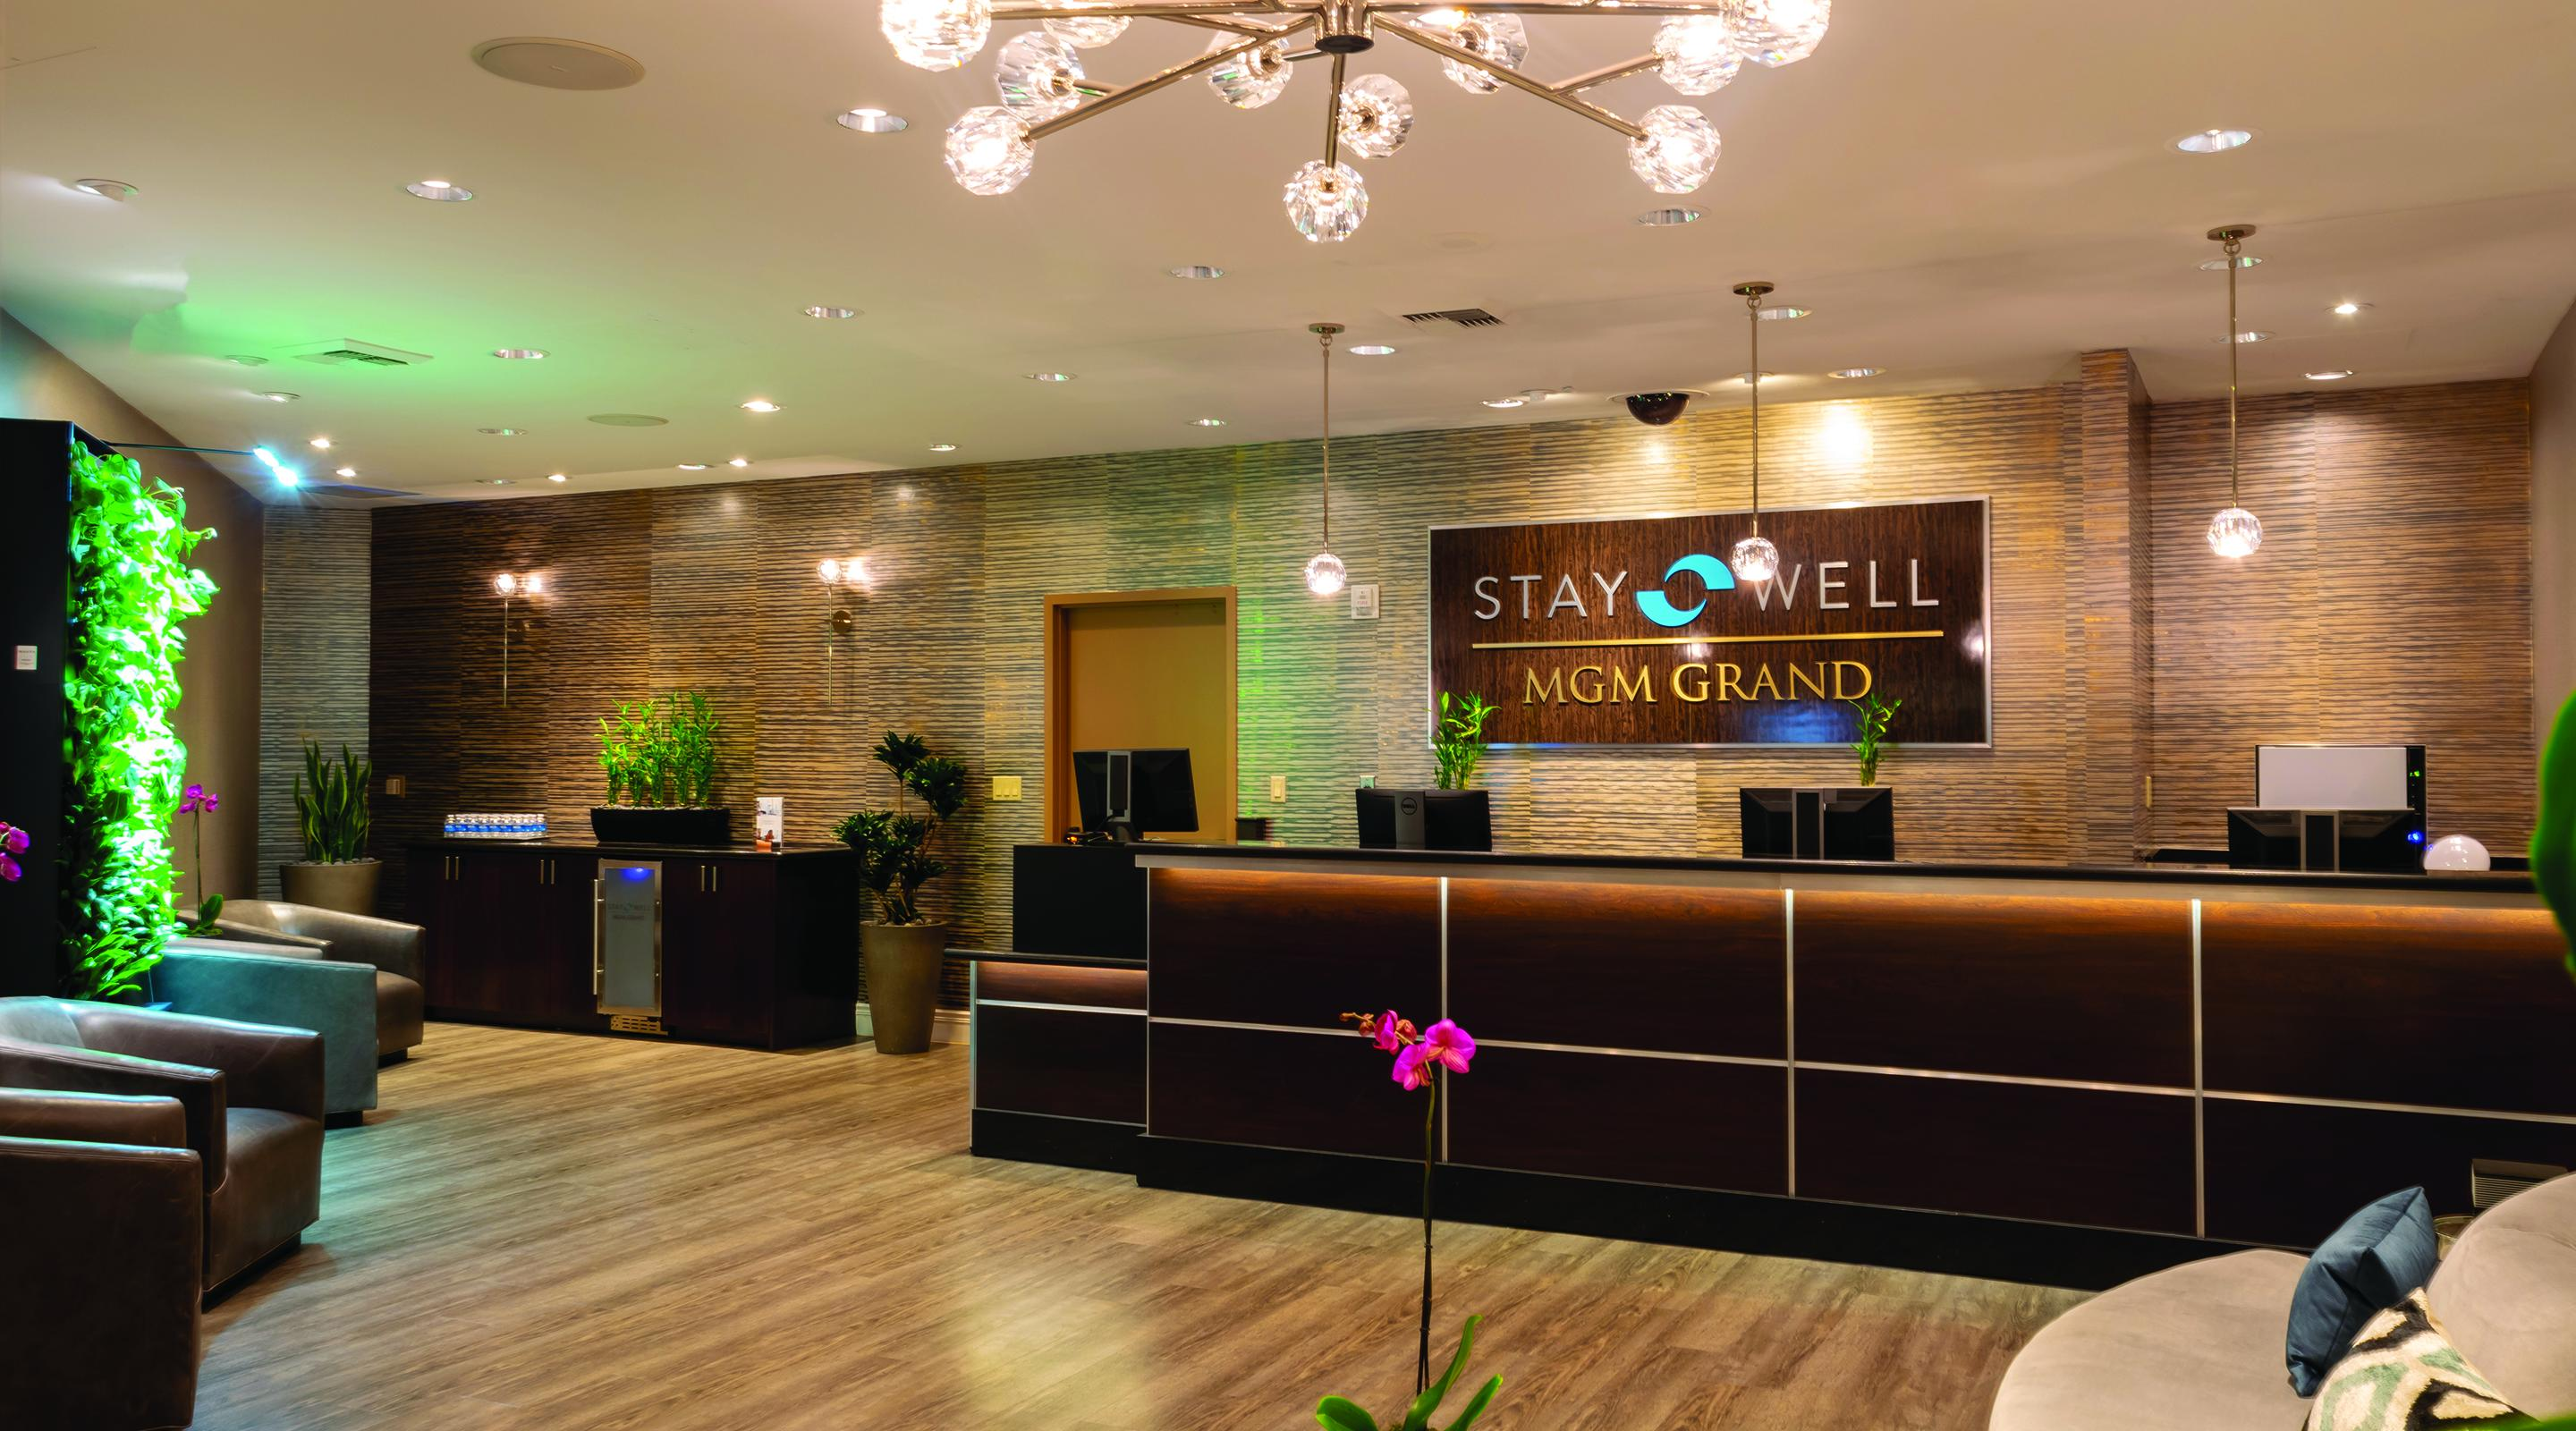 A view of the Stay Well Lounge at MGM Grand.